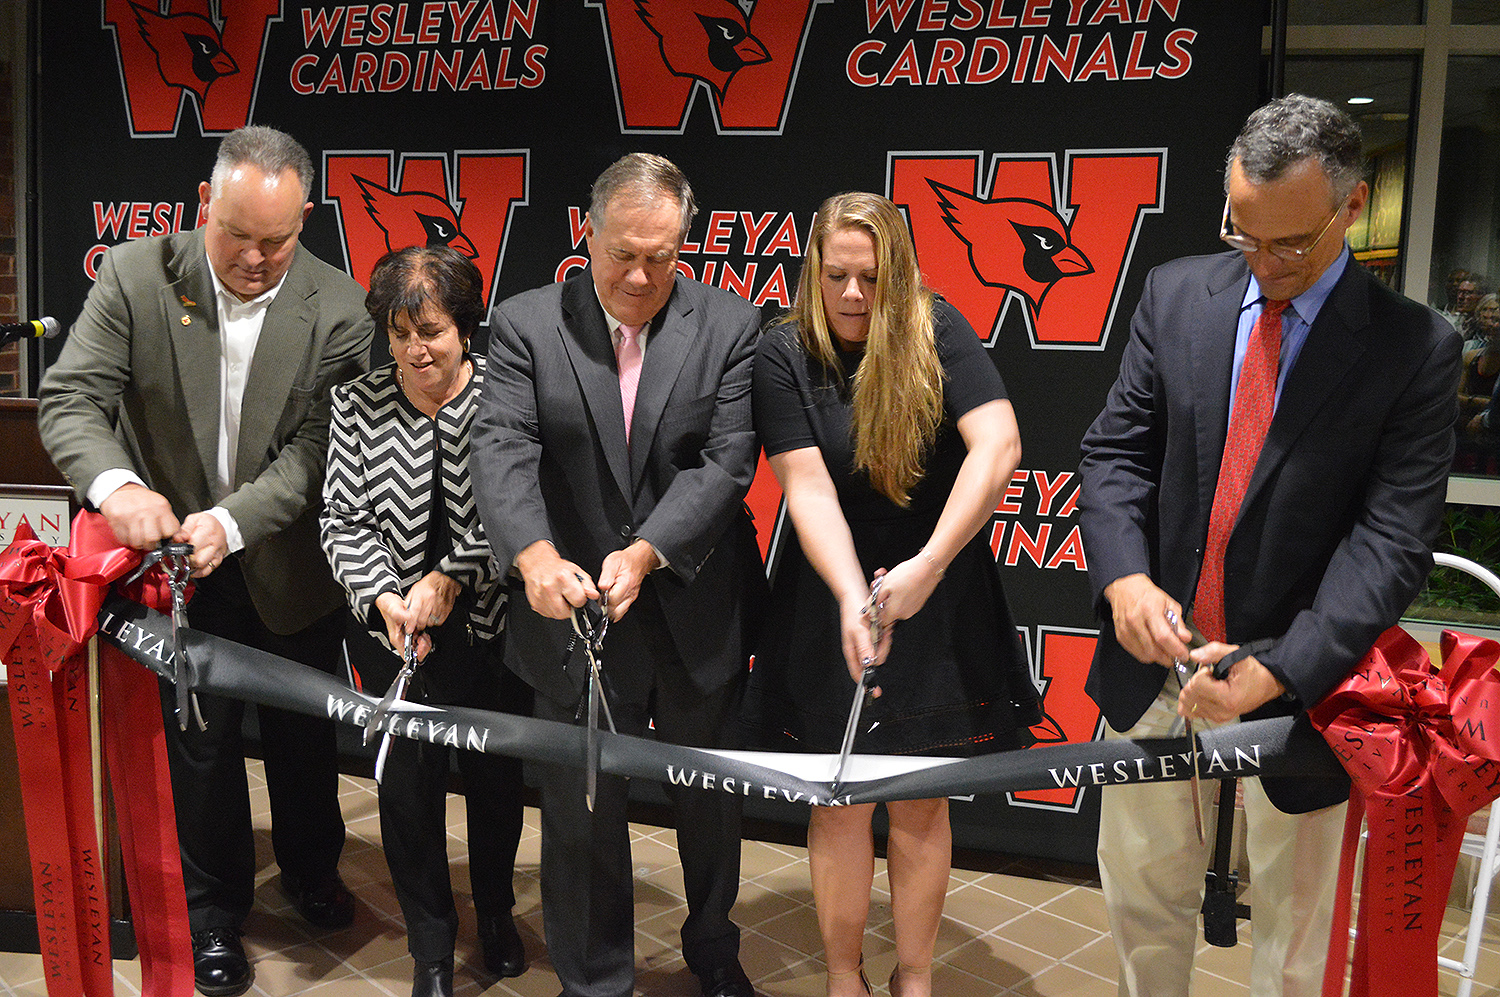 Bill and Amanda Belichick joined Whalen, Morea and Wesleyan President Michael Roth in a ribbon cutting ceremony to officially acknowledge the inside the newly-named Belichick Plaza